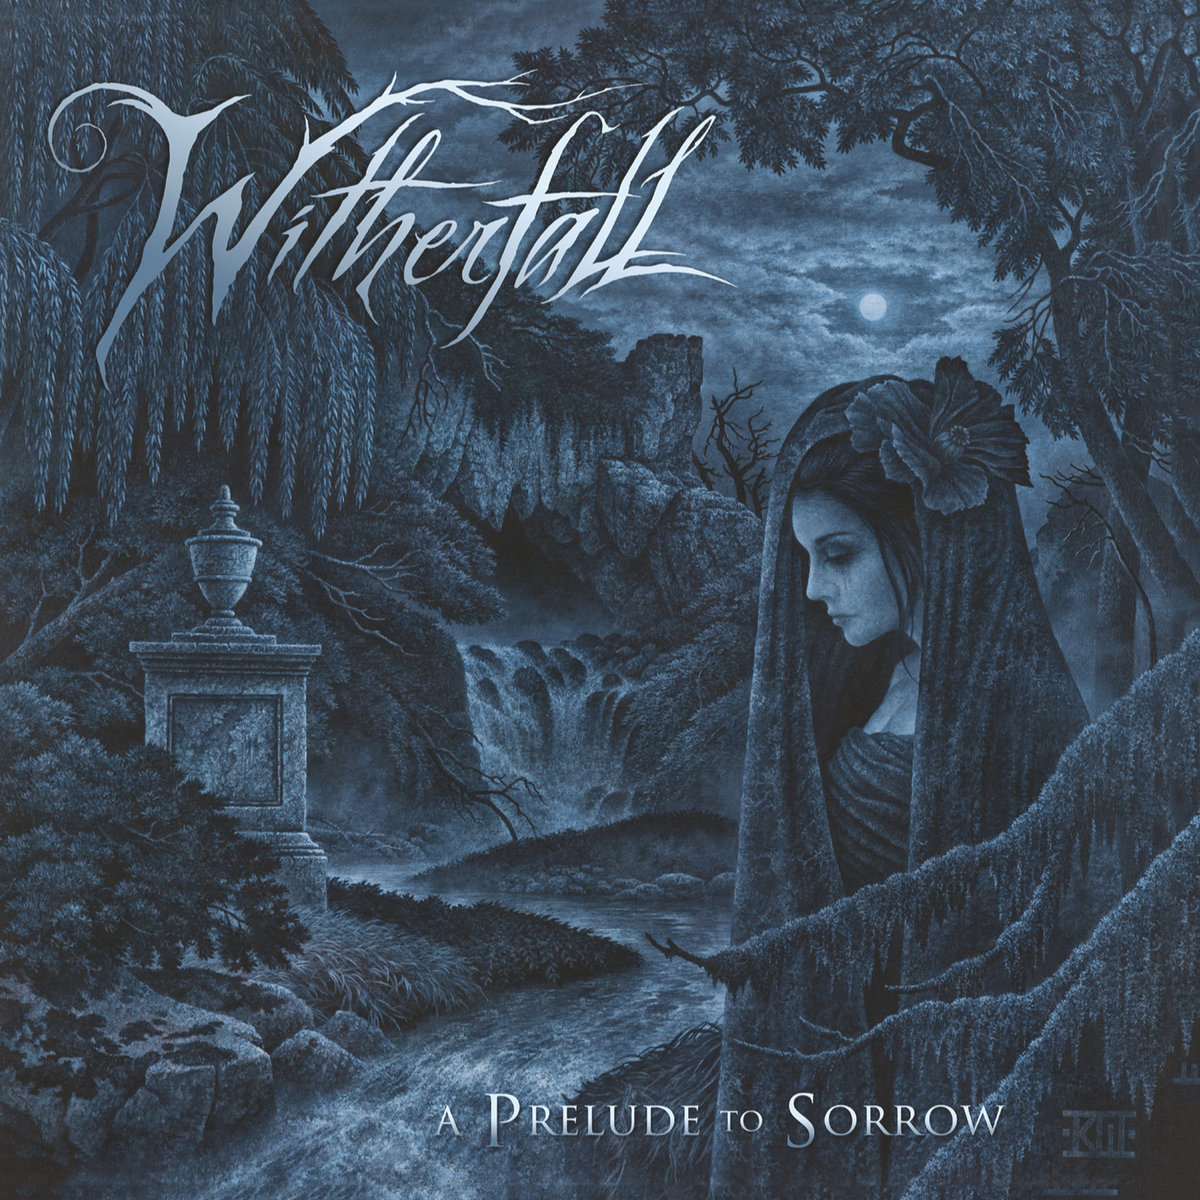 Whitherfall: A Prelude to Sorrow